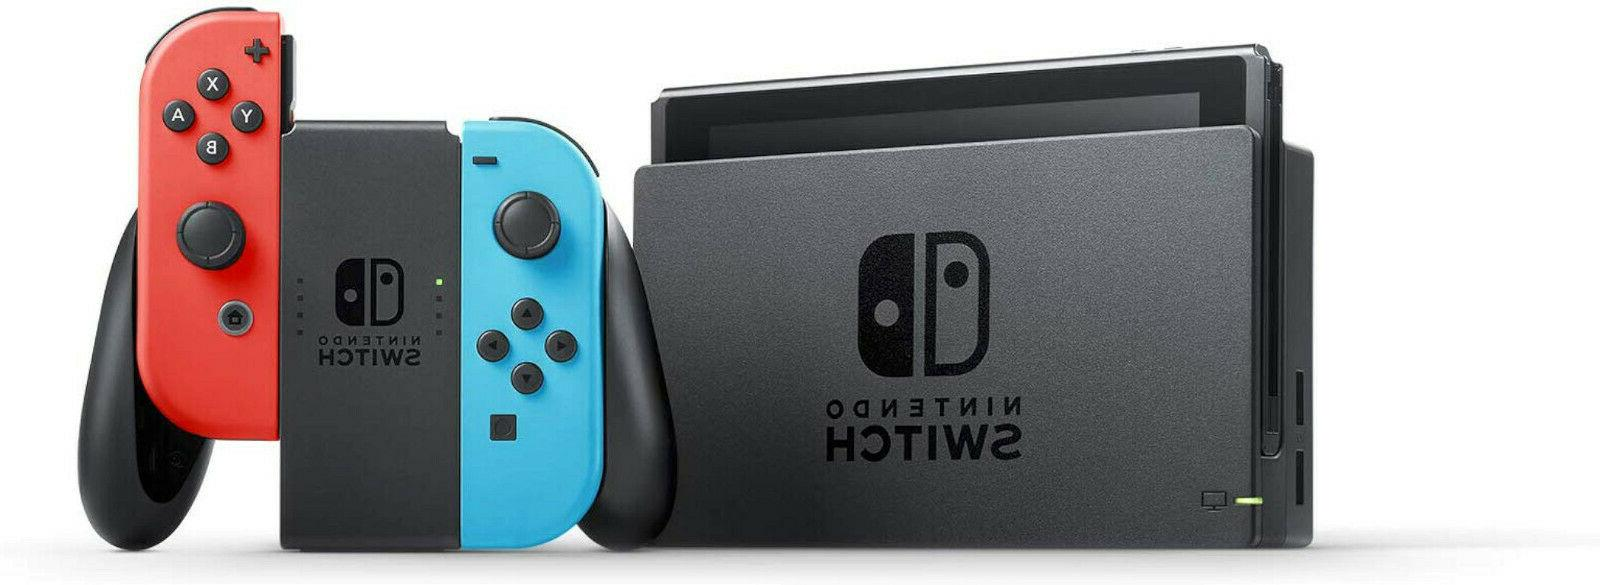 NEW Nintendo Switch Double Pack Bundle System game